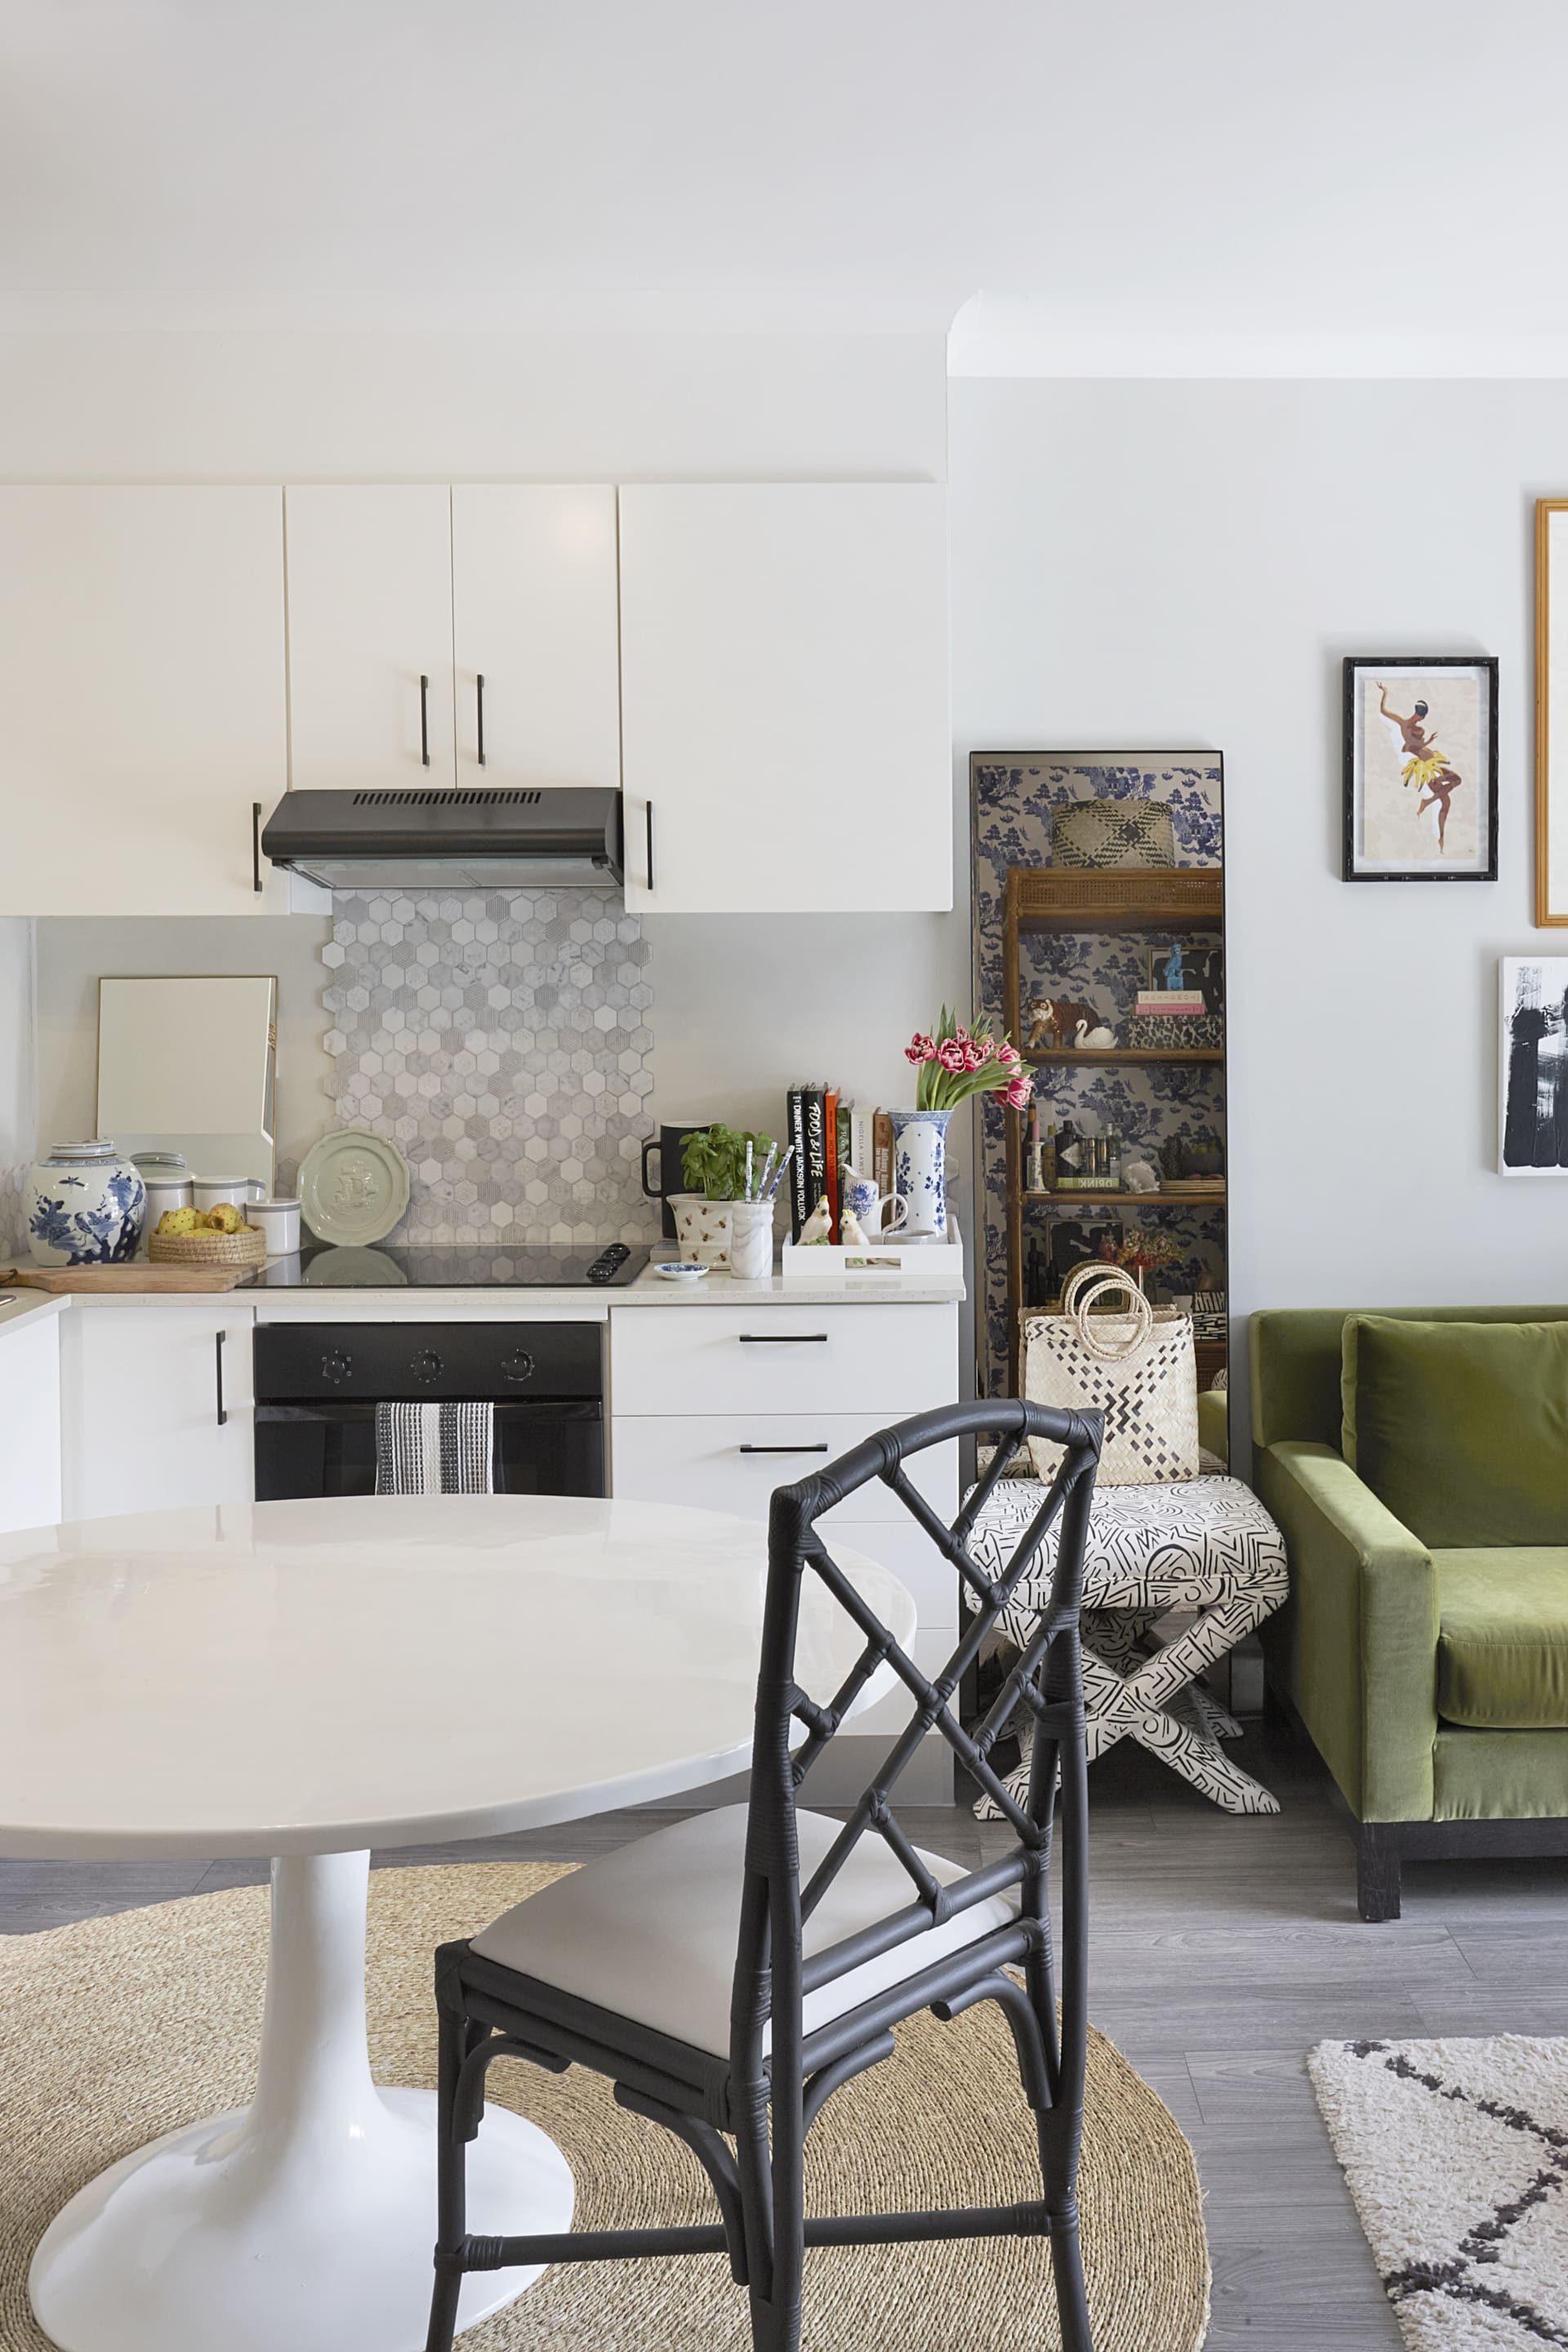 The compact and open kitchen and dining area boast aSaarinen Tulip table by Knoll and other statement finishes and furniture.© Micky Hoyle